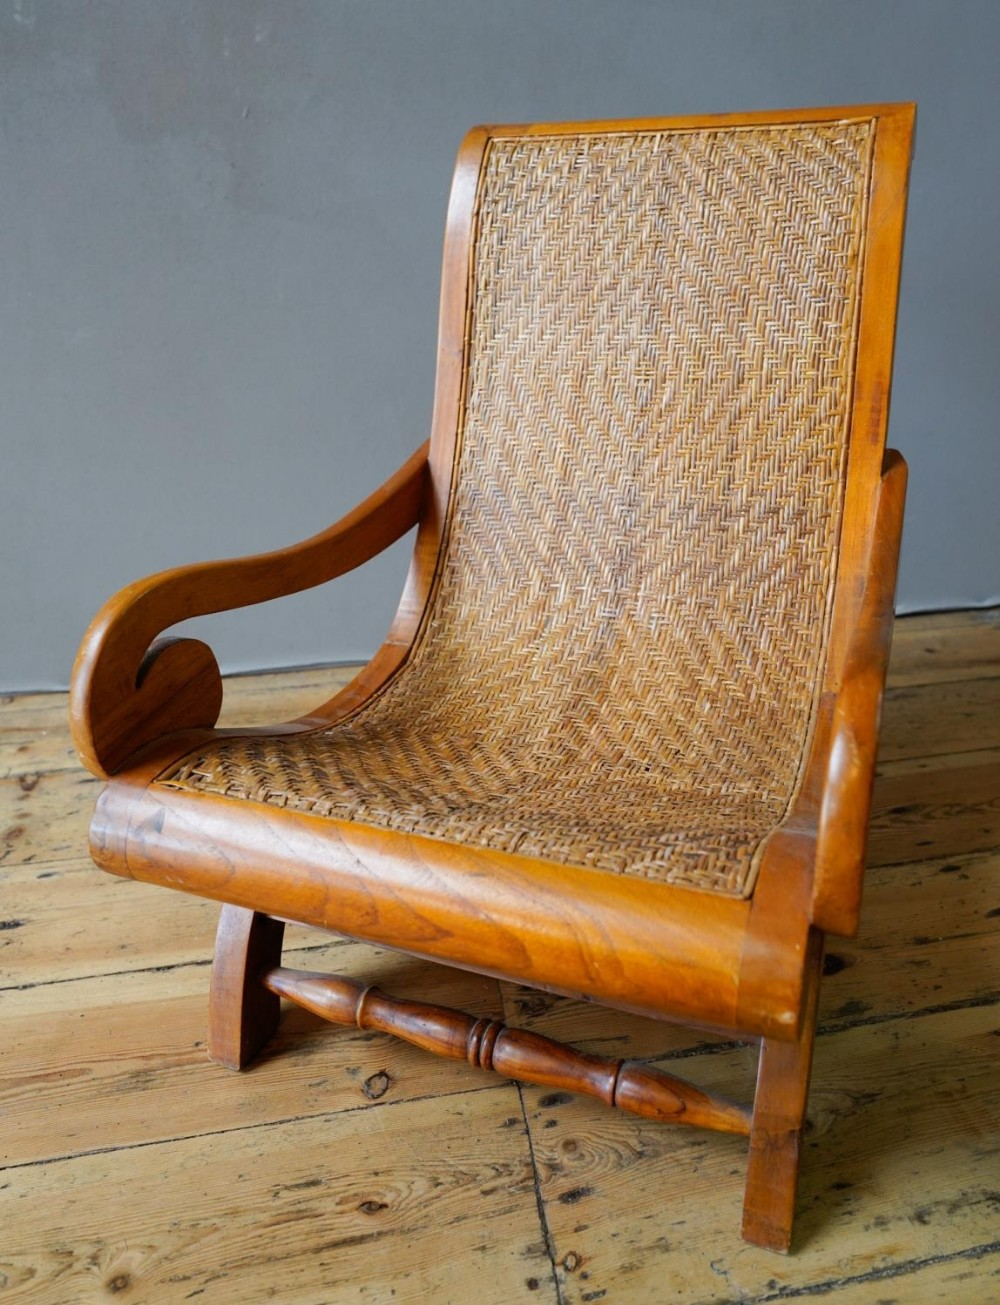 HARDWOOD SCROLL ARM CHILDS CHAIR, with cane seat and back (45cm wide, 68cm high, 58cm deep)